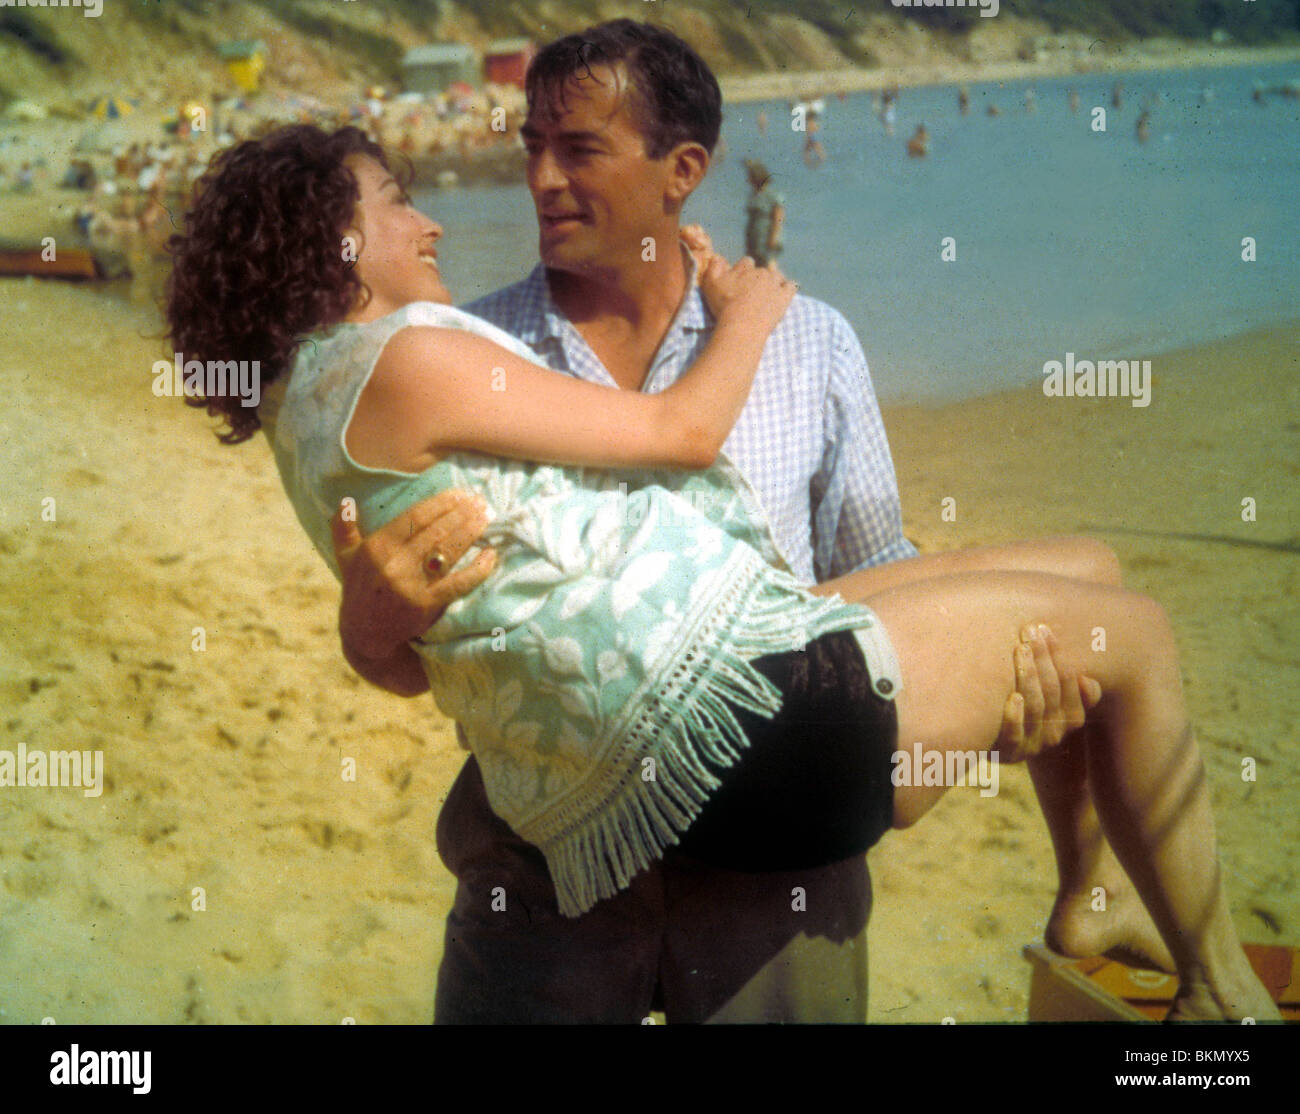 ON THE BEACH (1959) AVA GARDNER, GREGORY PECK OTBH 004 GN - Stock Image